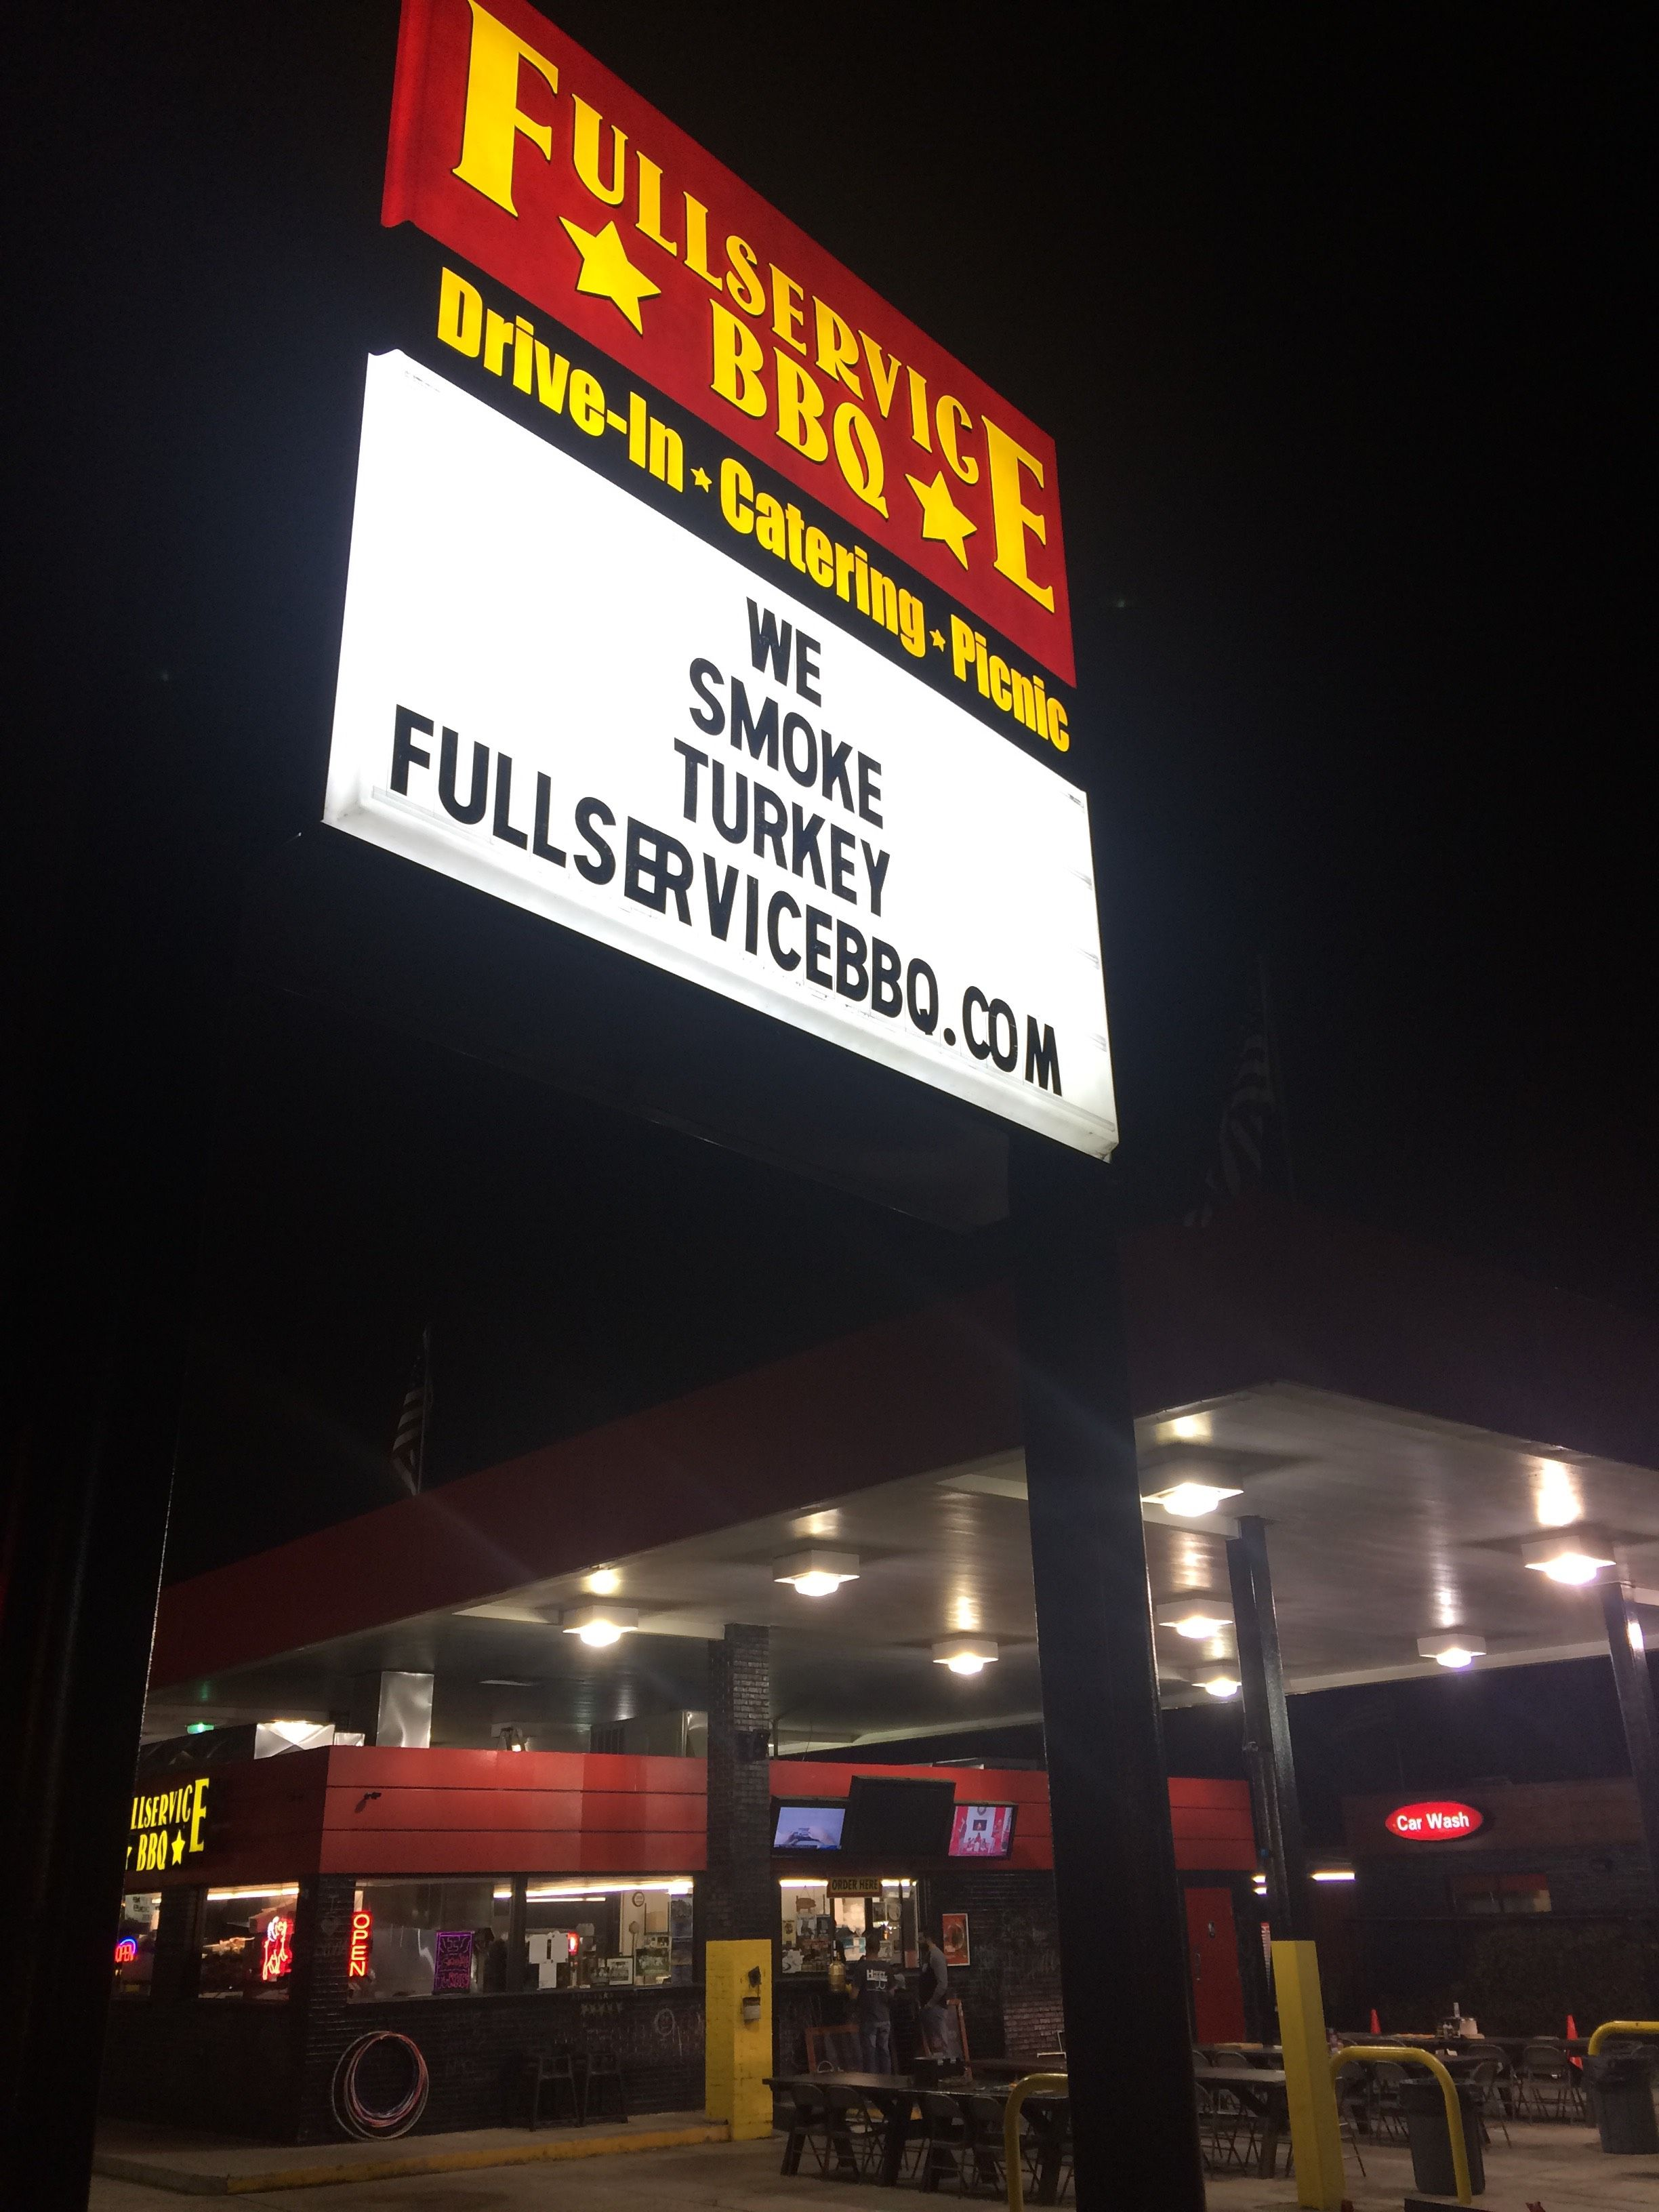 Foodie travels full service bbq knoxville tenn